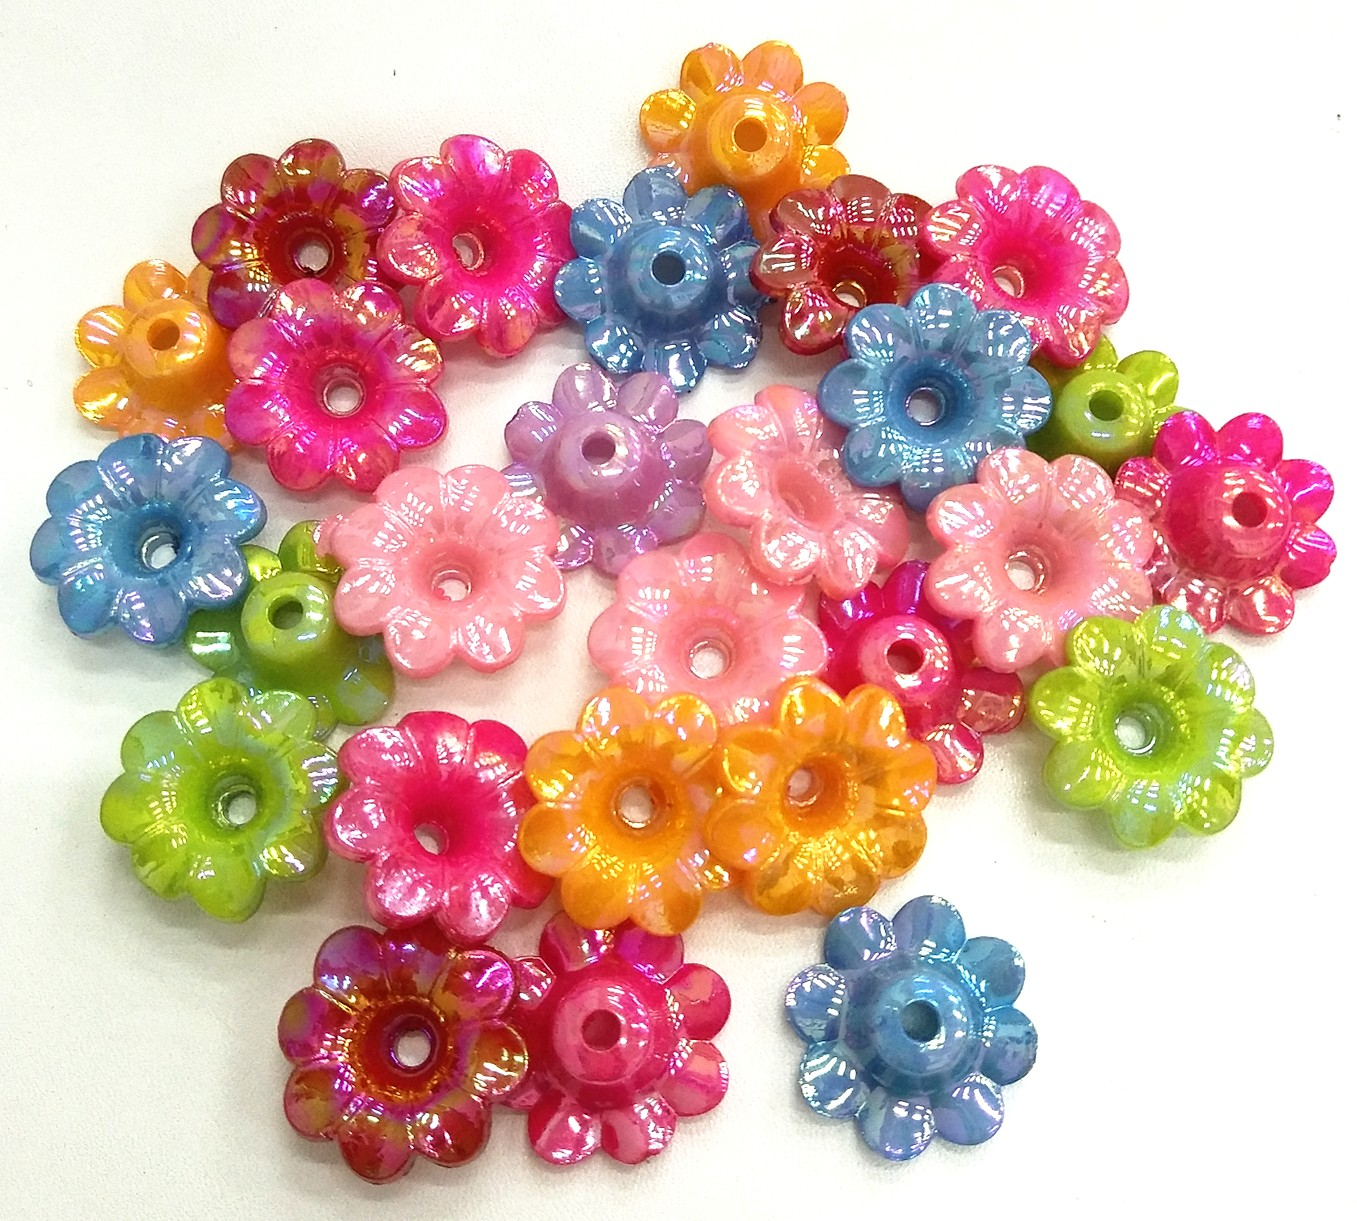 20*20mm 50pcs/lot  Mixed colors Flowers Plastic Spacer Beads Sewing Buttons DIY Handmade Jeweley Making Charms Decorations  eva 1 lot 2 pcs hama fuse perler beads 2 6mm big square pegboards connecting pegoard mini hama beads jigsaw puzzle handmade diy